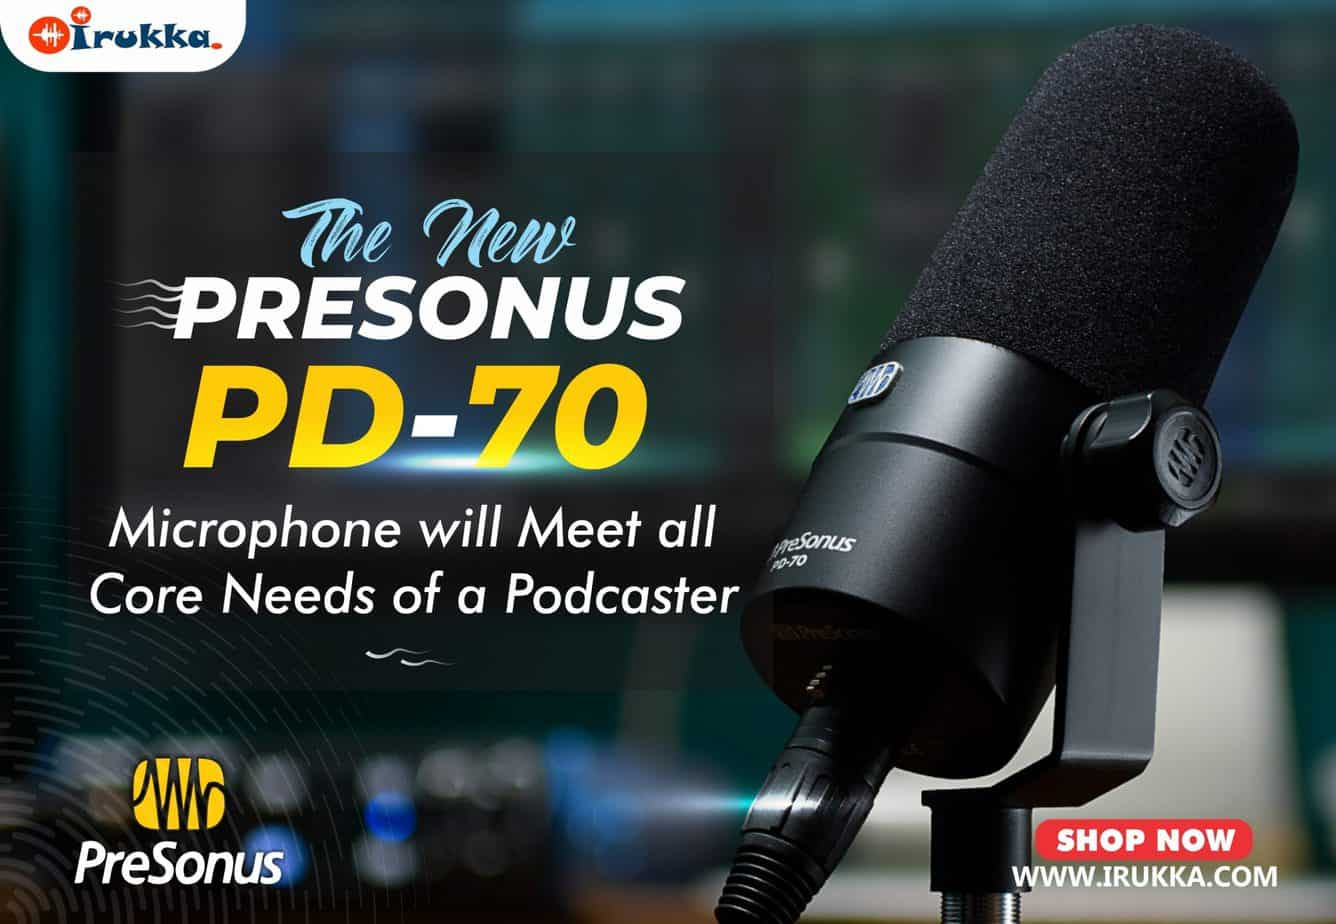 The New PreSonus PD-70 Microphone will Meet all Core Needs of a Podcaster